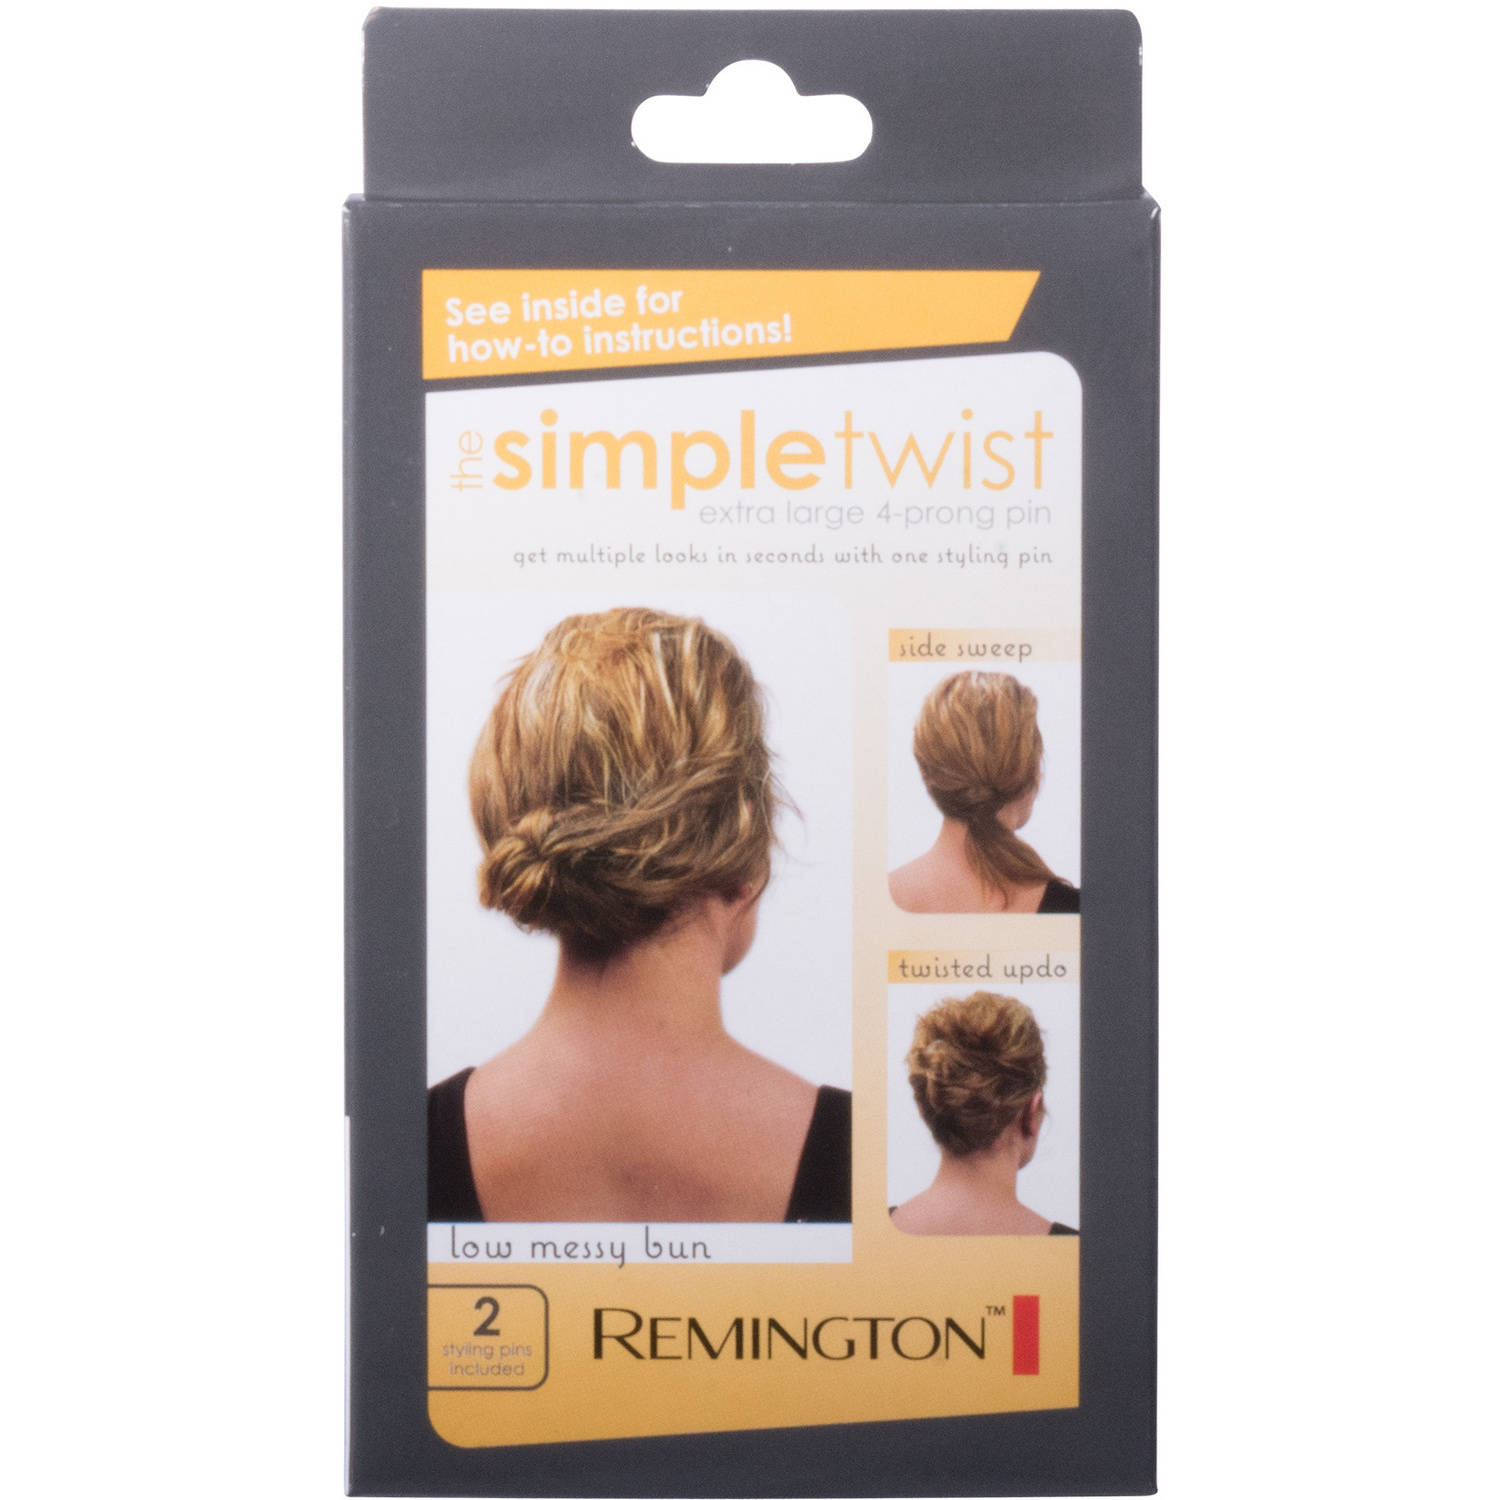 Remington The Simple Twist Extra Large 4-Prong Hair Styling Pins, 2 count